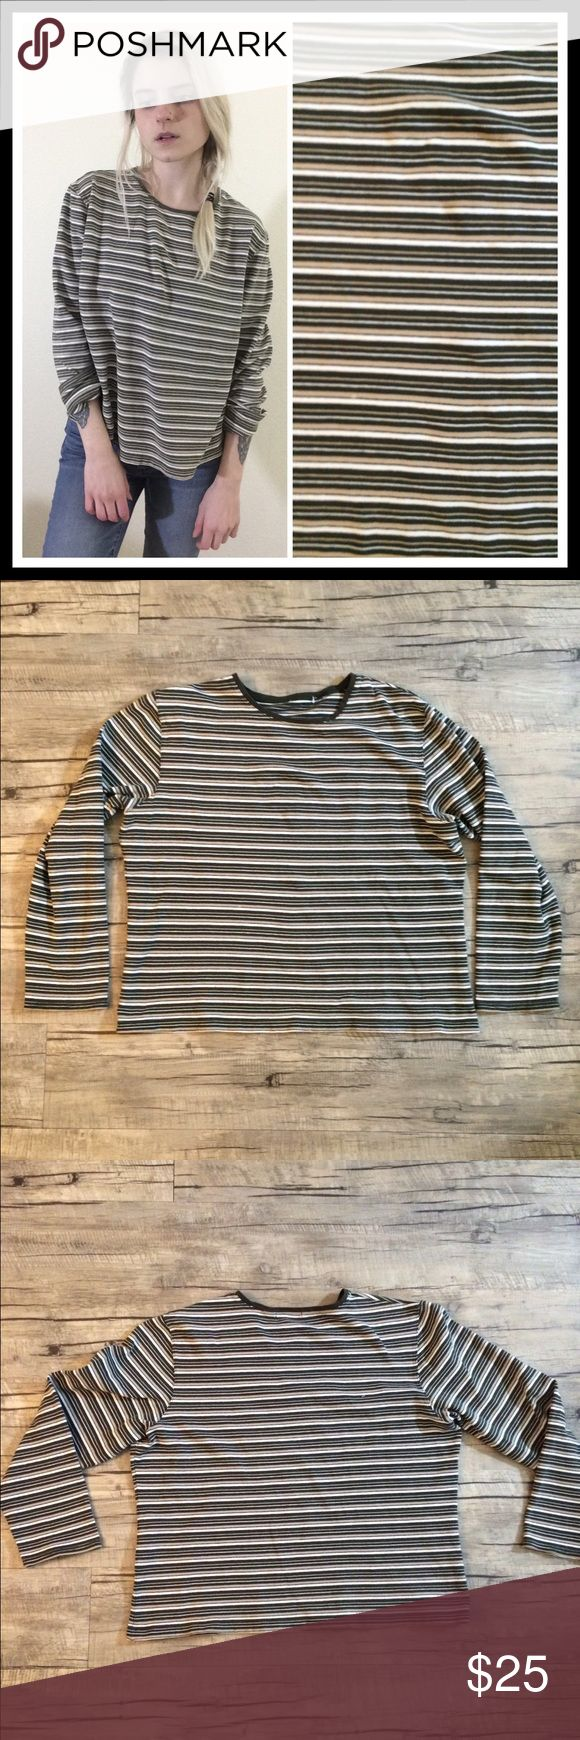 """➕90's VTG Striped Tomboy Long Sleeved Tee➕ ➕MEASUREMENTS➕ Bust-44"""" Length- 22""""  ➕DETAILS ➕ ▪️Model is 5' 5"""" and is a size XS▪Great worn condition▪️No tagged size or brand, fits like M/L🔺NO TRADES🔺❌NOT UNIF❌ #90s #grunge #oversized #vintage #striped #slouchy UNIF Tops Tees - Long Sleeve"""